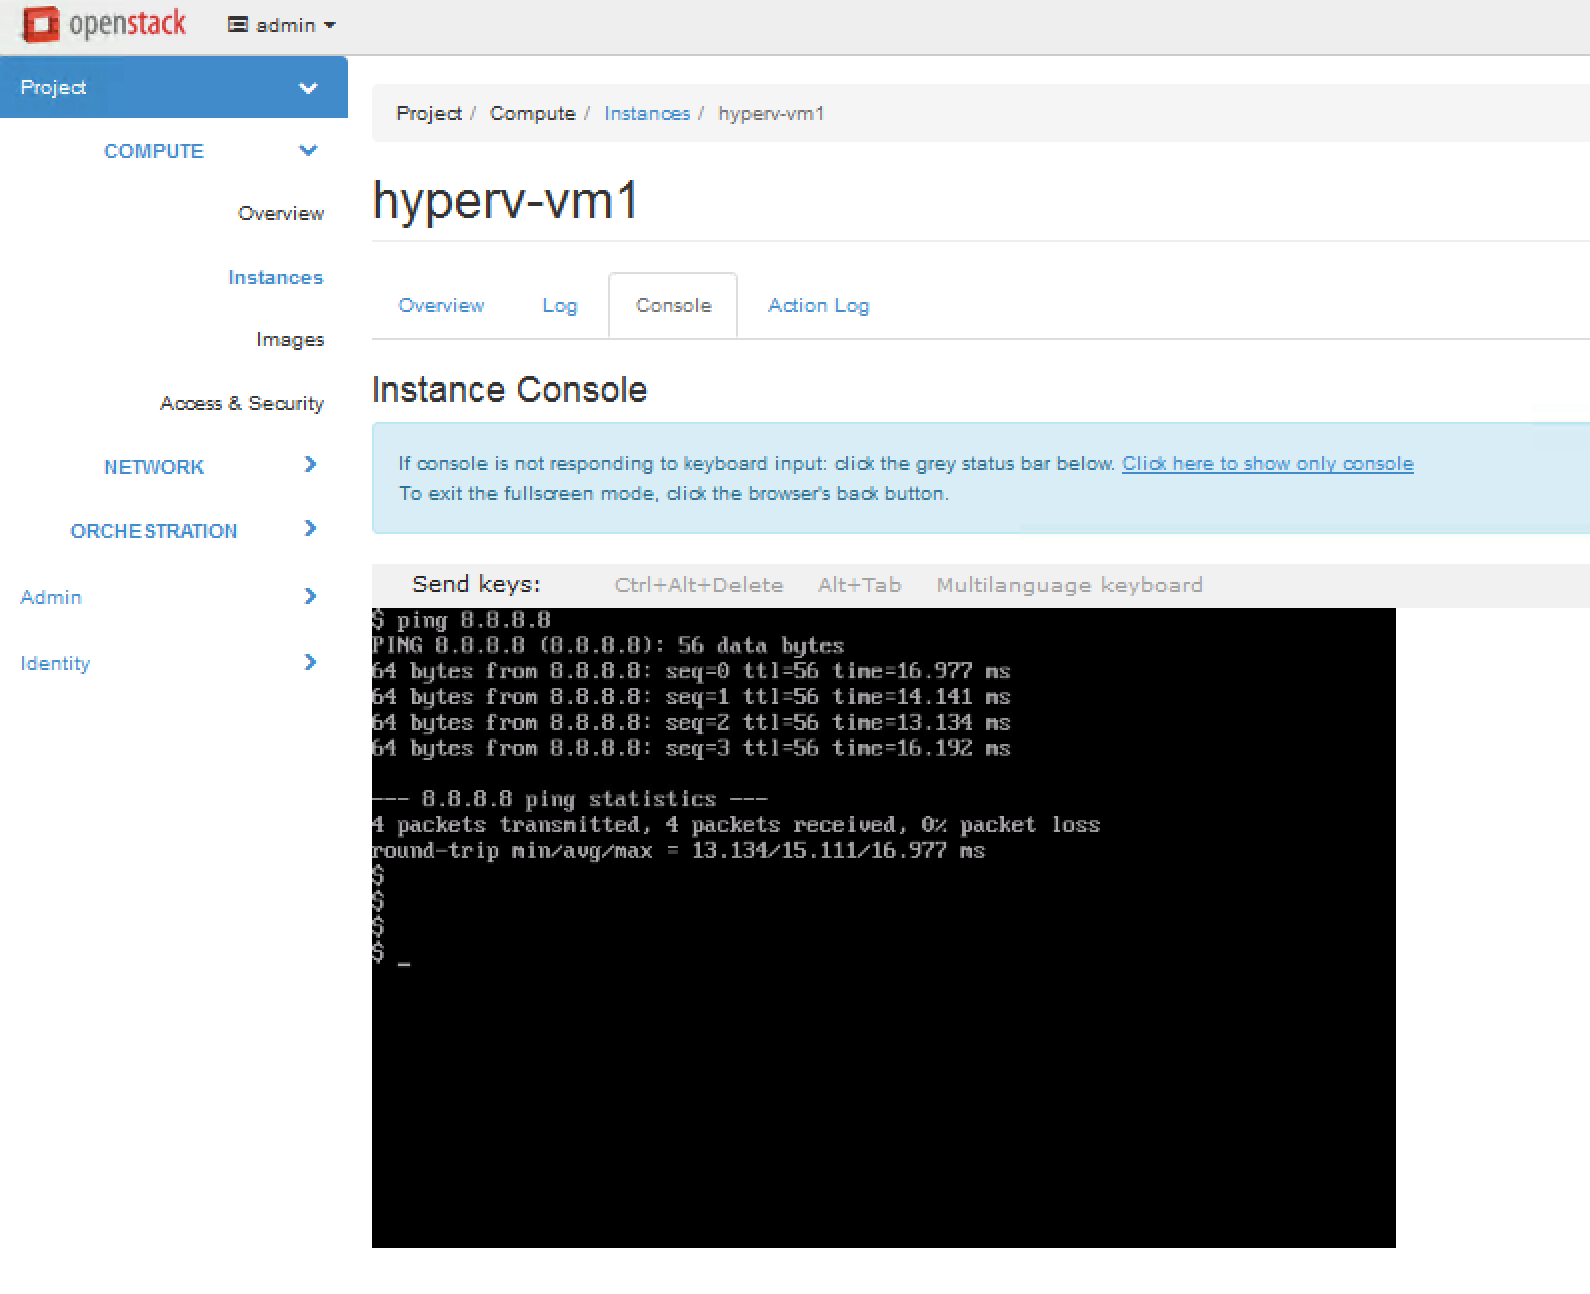 Deploying OpenStack using Docker containers with Hyper-V and